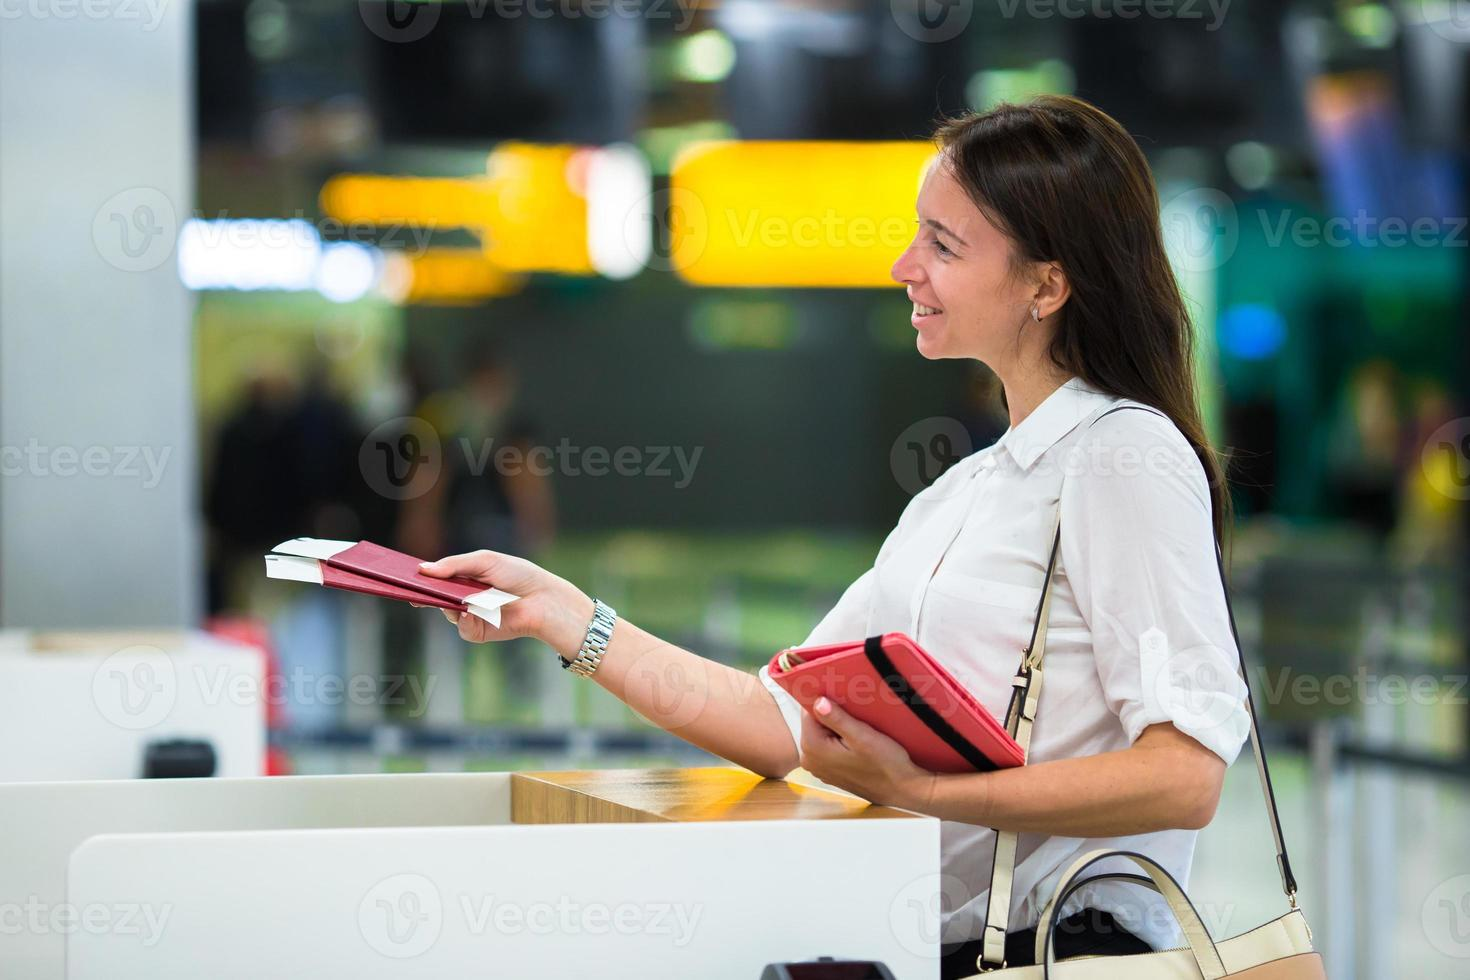 Women holding passports and boarding pass at airport photo